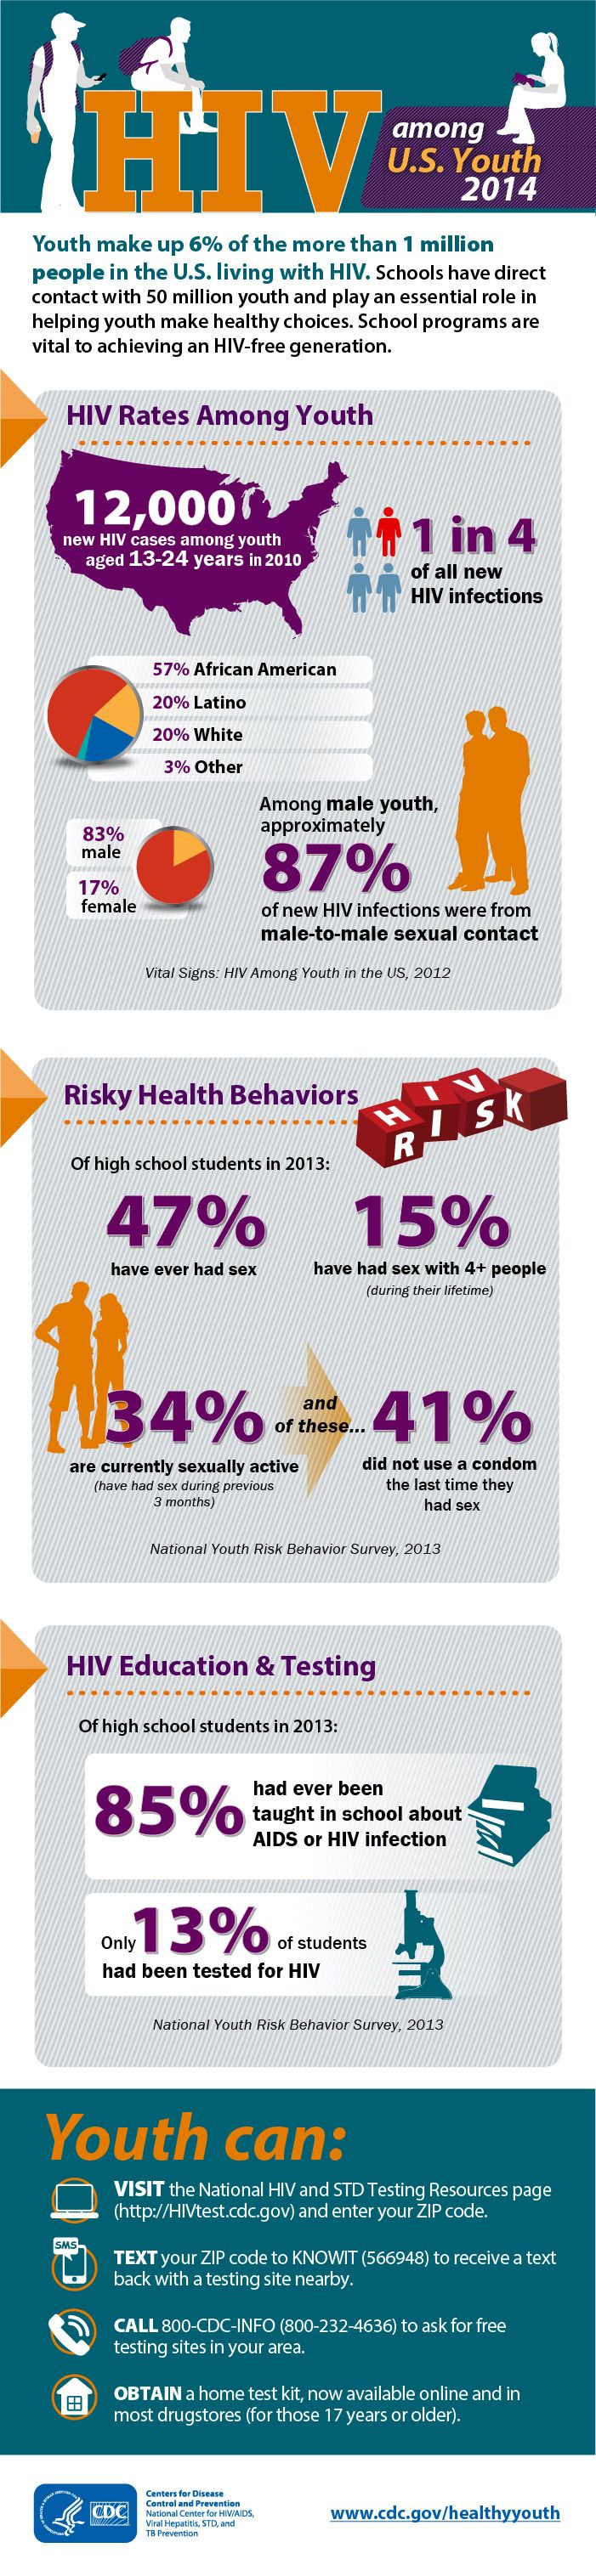 22 best HIV/AIDS Infographics images on Pinterest | Aids awareness ...